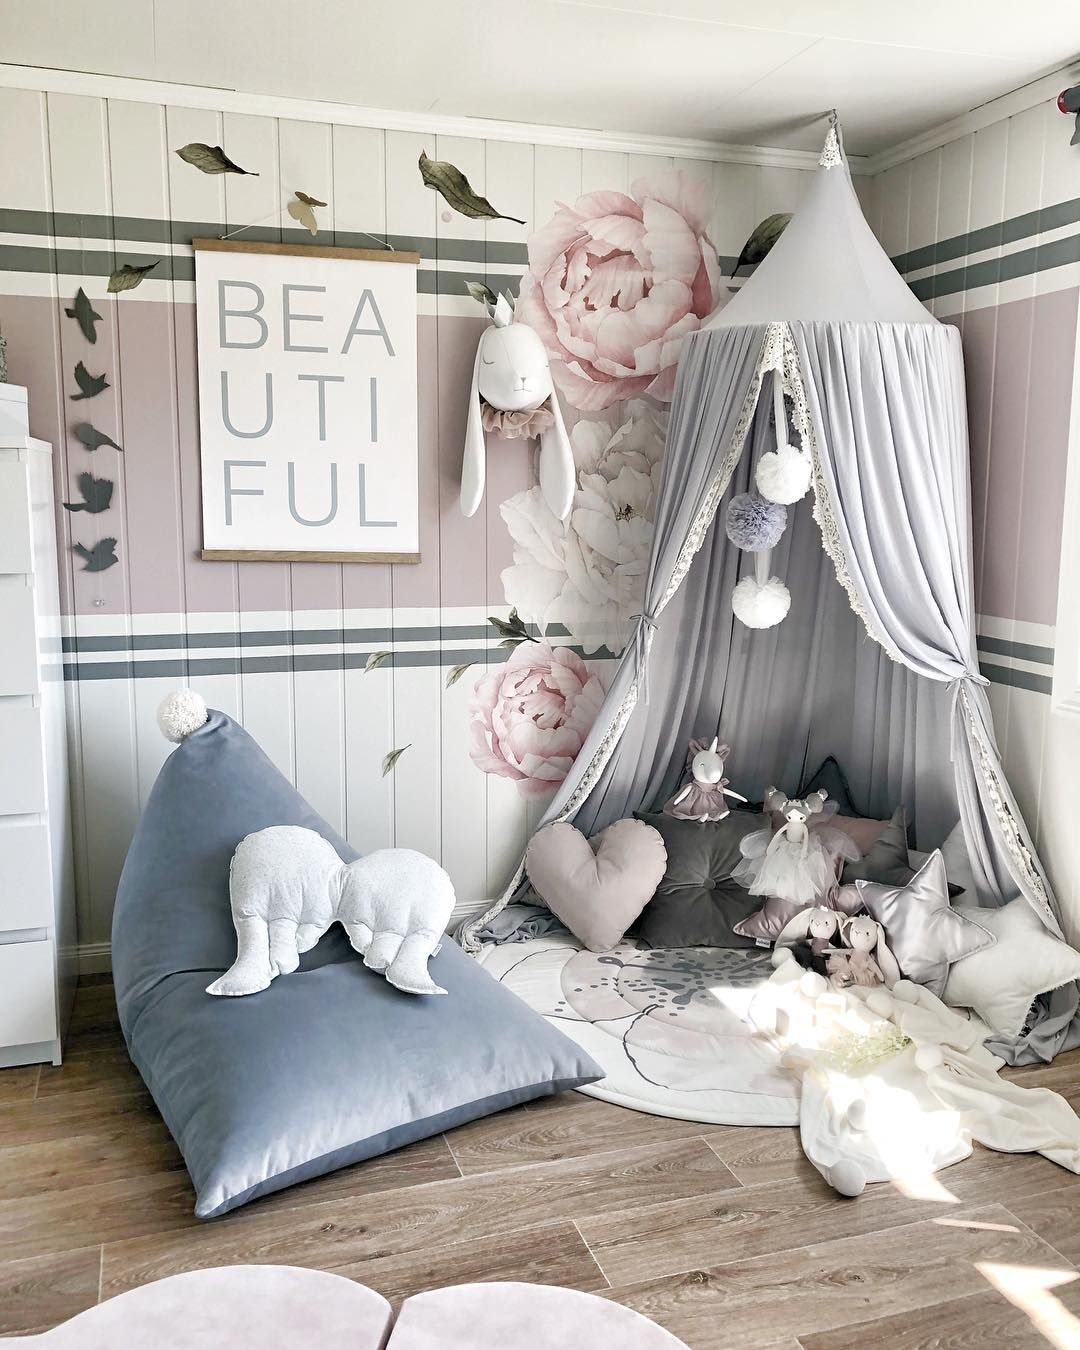 21 Fun Kids Playroom Ideas & Design Tips images